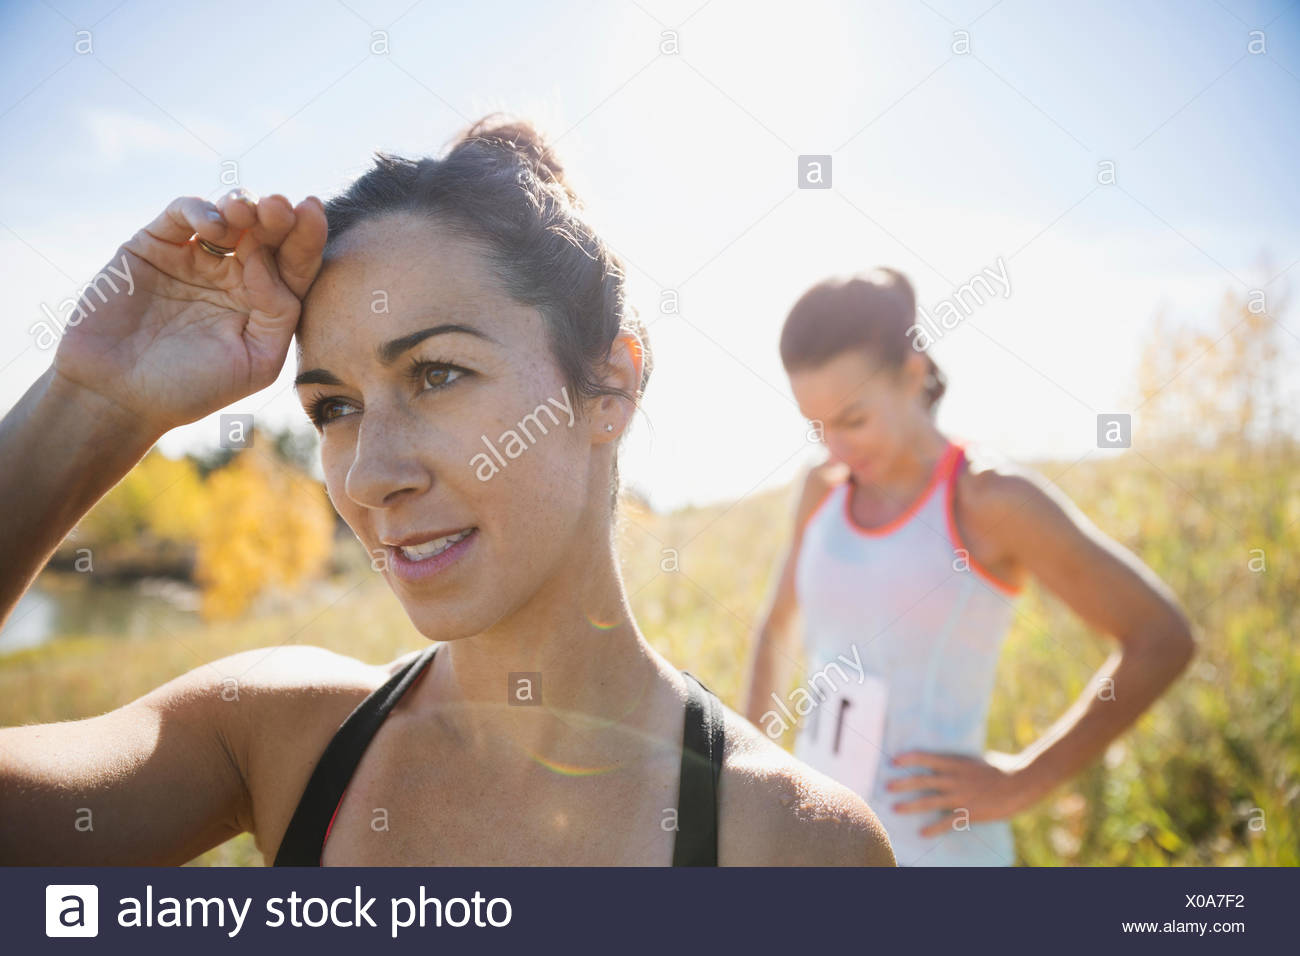 Runners resting in sunny field - Stock Image